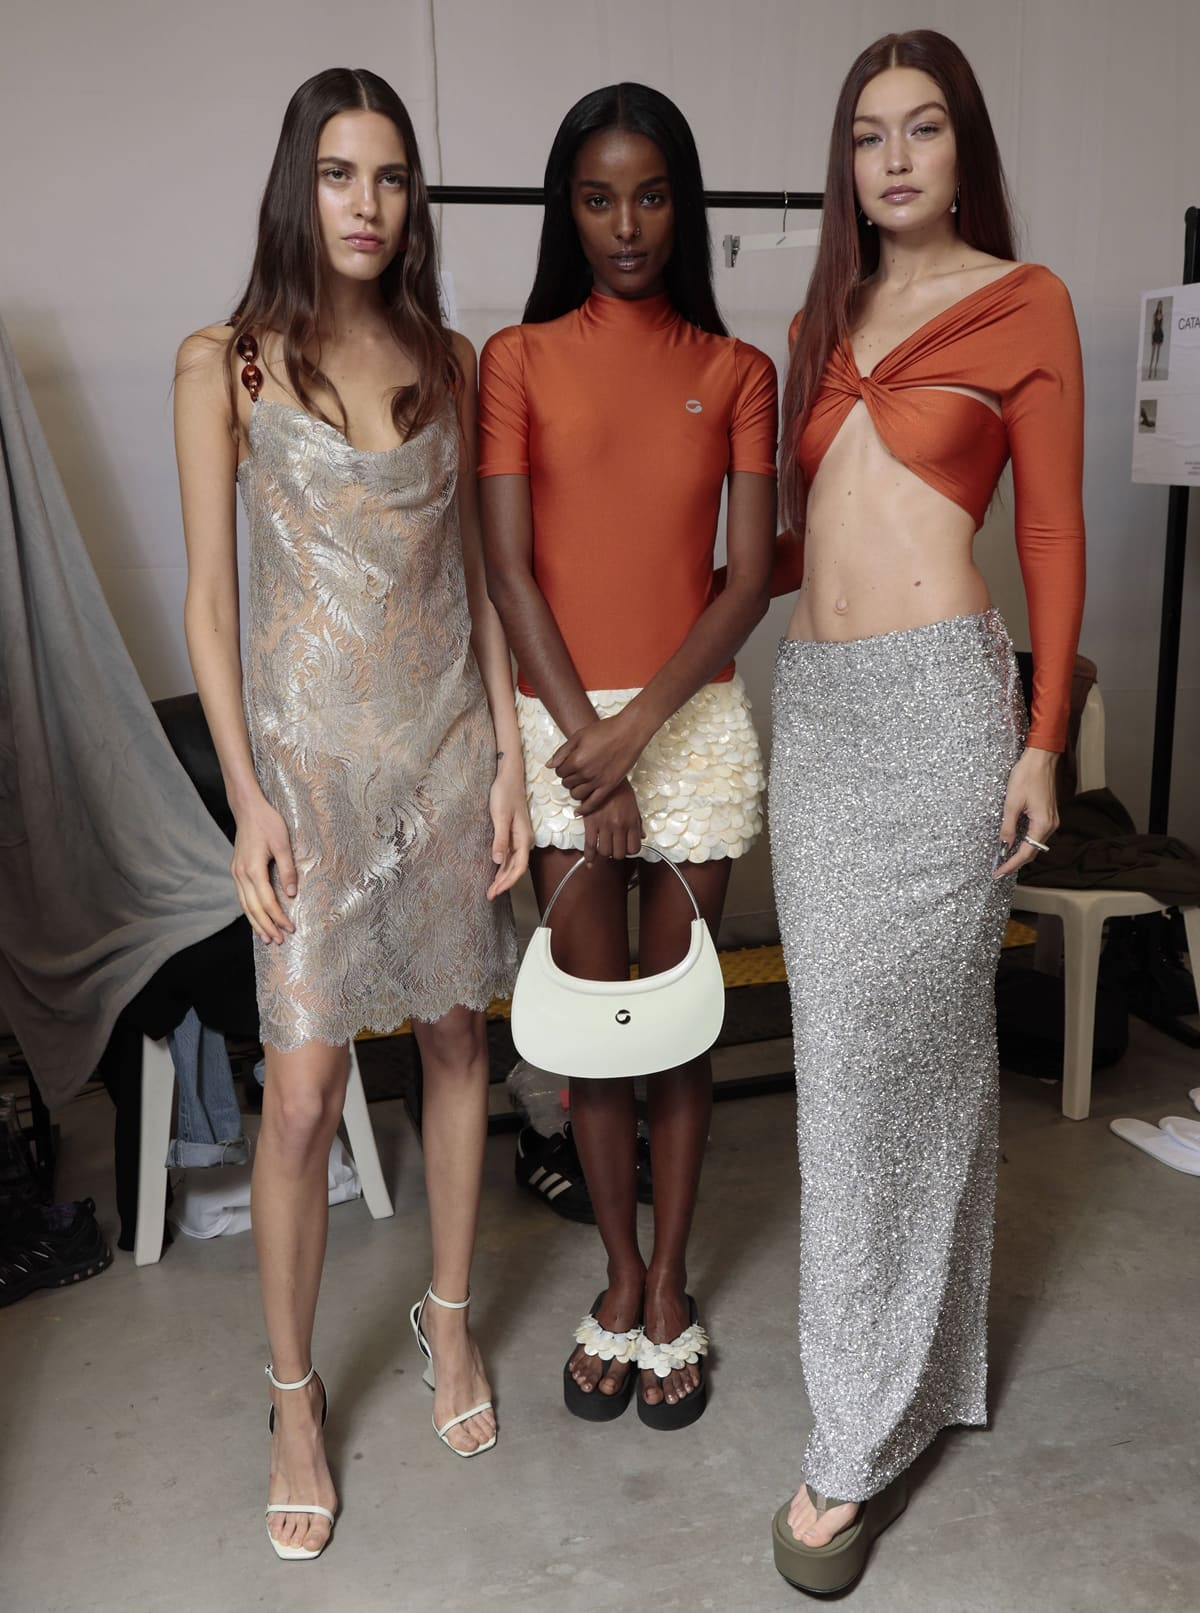 Joined by other stunning models, Gigi Hadid flaunts her toned abs backstage ahead of the Coperni Womenswear Spring/Summer 2022 show